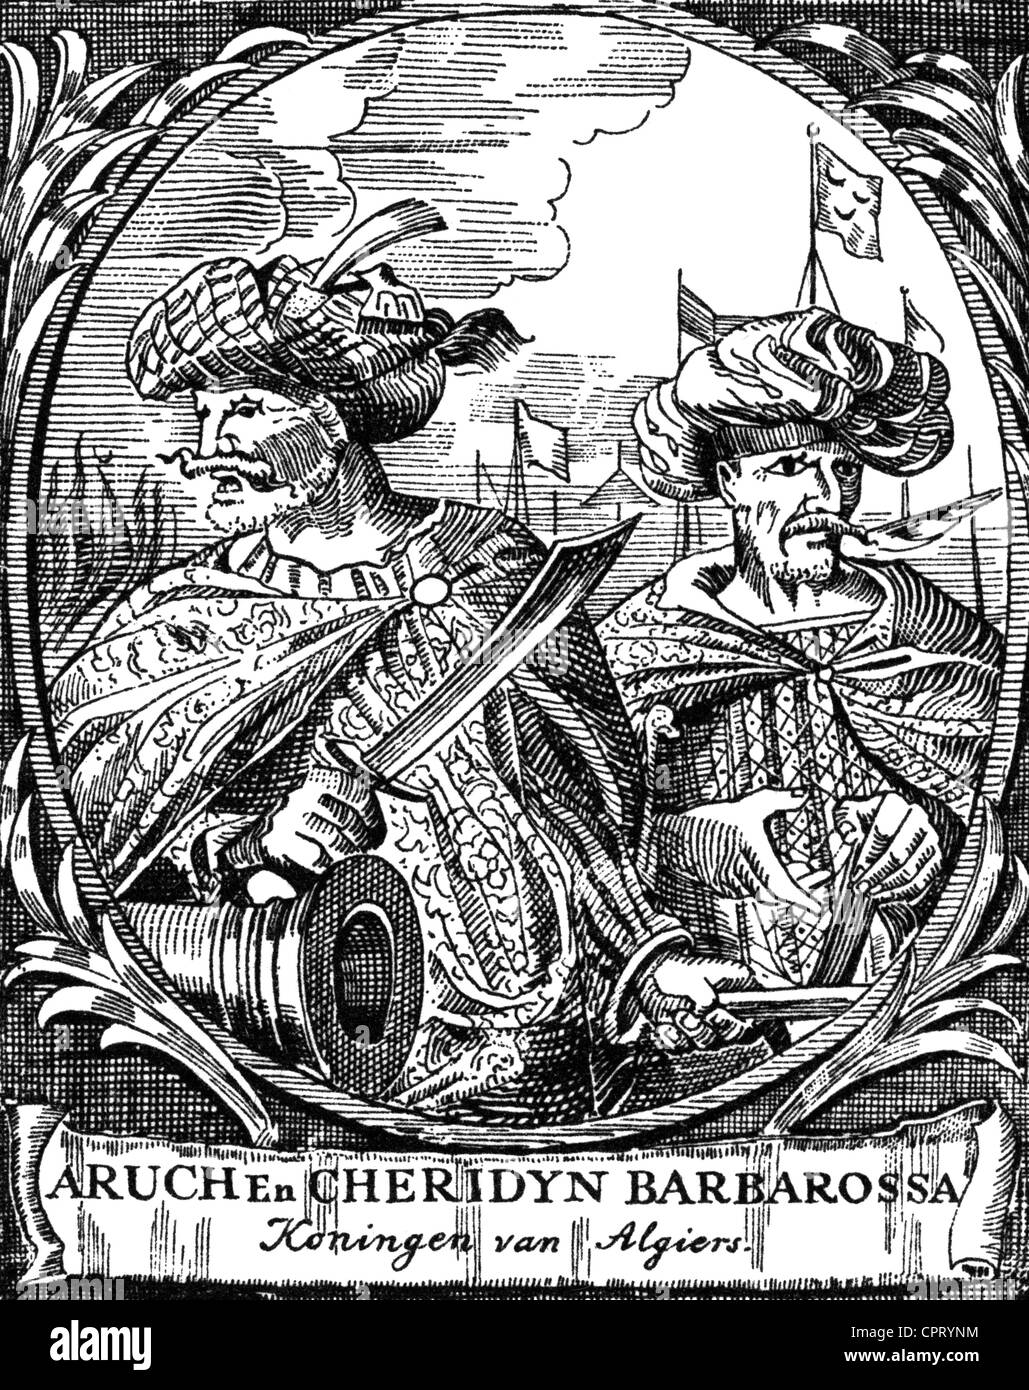 Hayreddin Barbarossa, Khizir, circa 1465 - 5.7.1546, Ottoman corsair, with his brother Aruj, copper engraving, 16th - Stock Image